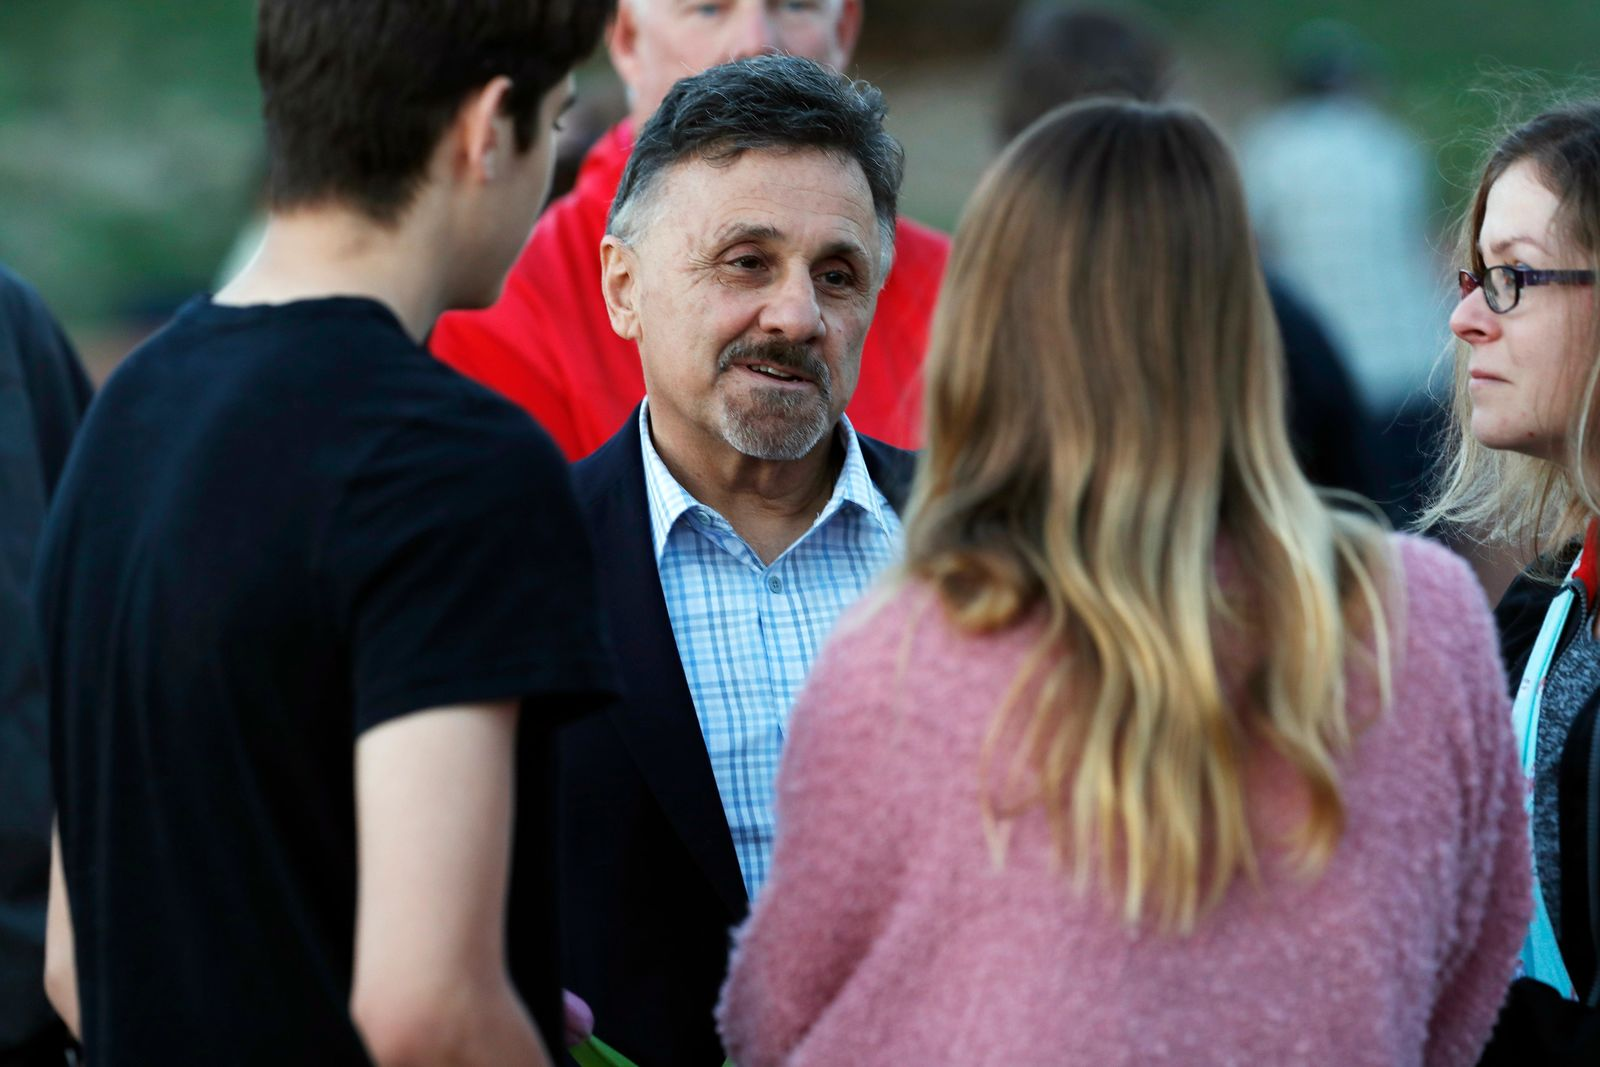 FILE - In this Friday, April 19, 2019, file photograph, Frank DeAngelis, center, greets well-wishers during a vigil at the memorial for victims of the massacre at Columbine High School more than 20 years earlier in Littleton, Colo. DeAngelis was principal of the school at the time of the attack. The school district is considering razing the current building and putting up a new structure. (AP Photo/David Zalubowski, File)